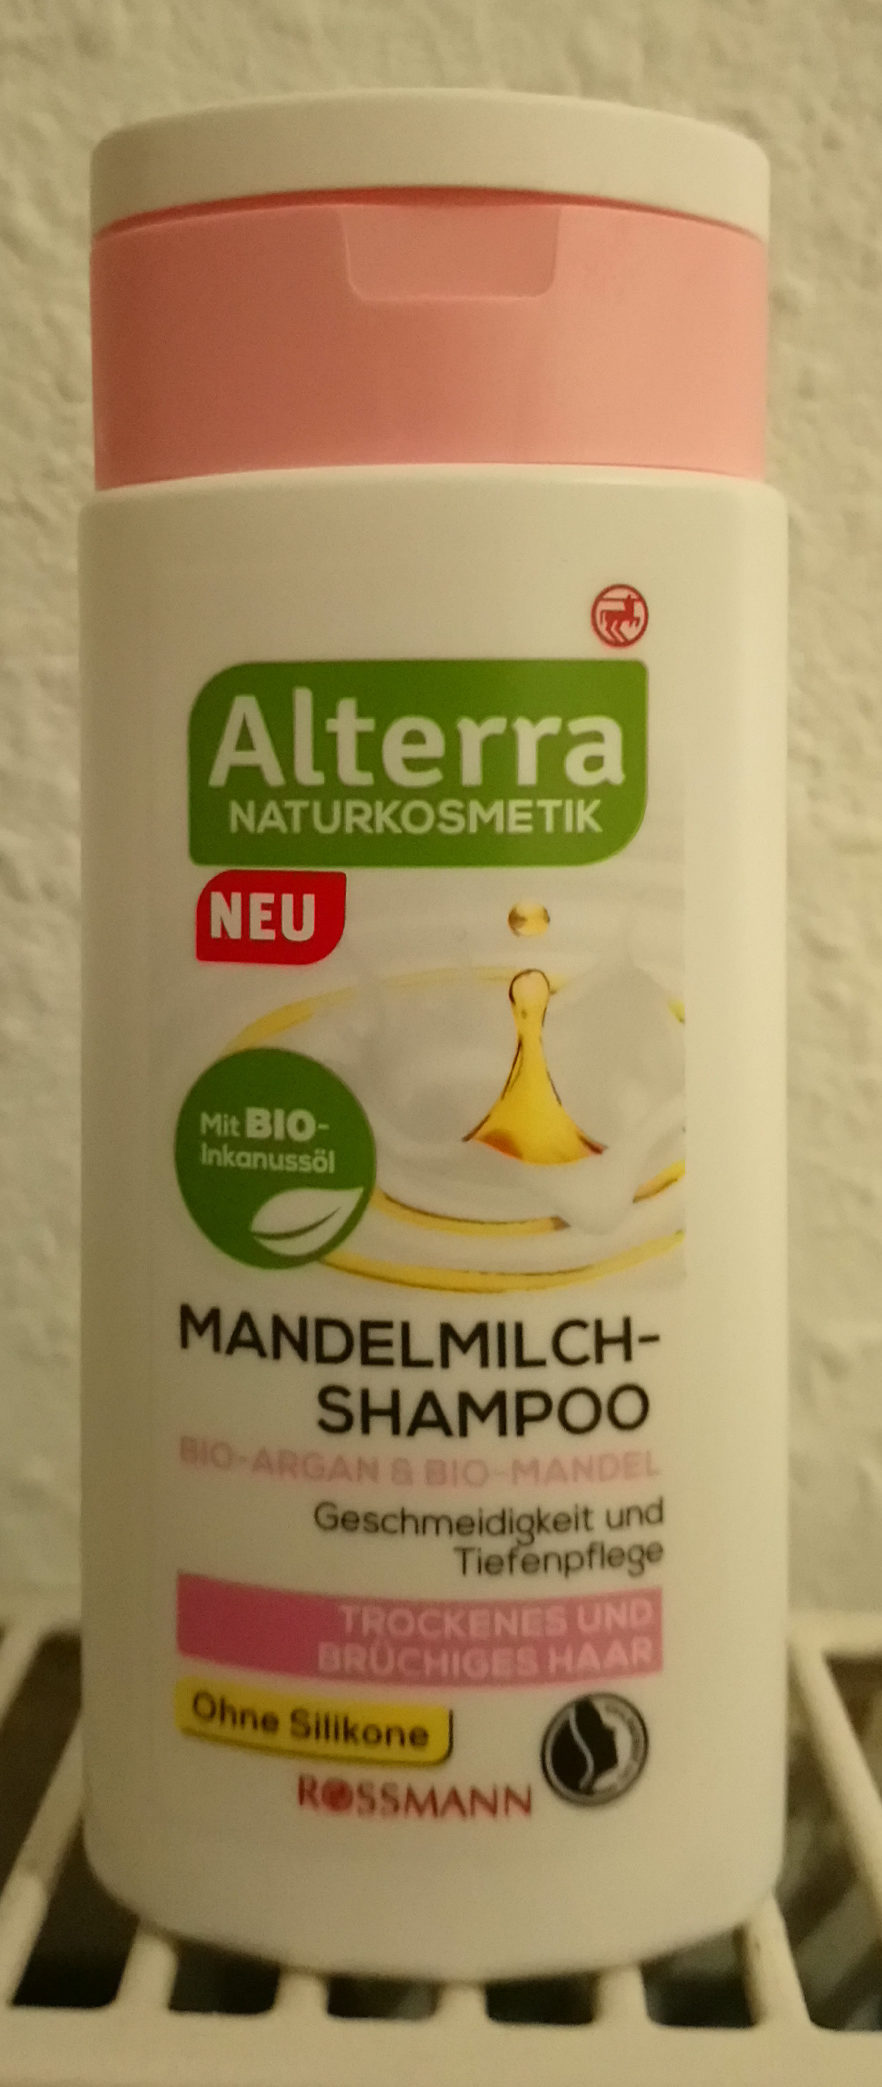 Mandelmilch-Shampoo - Product